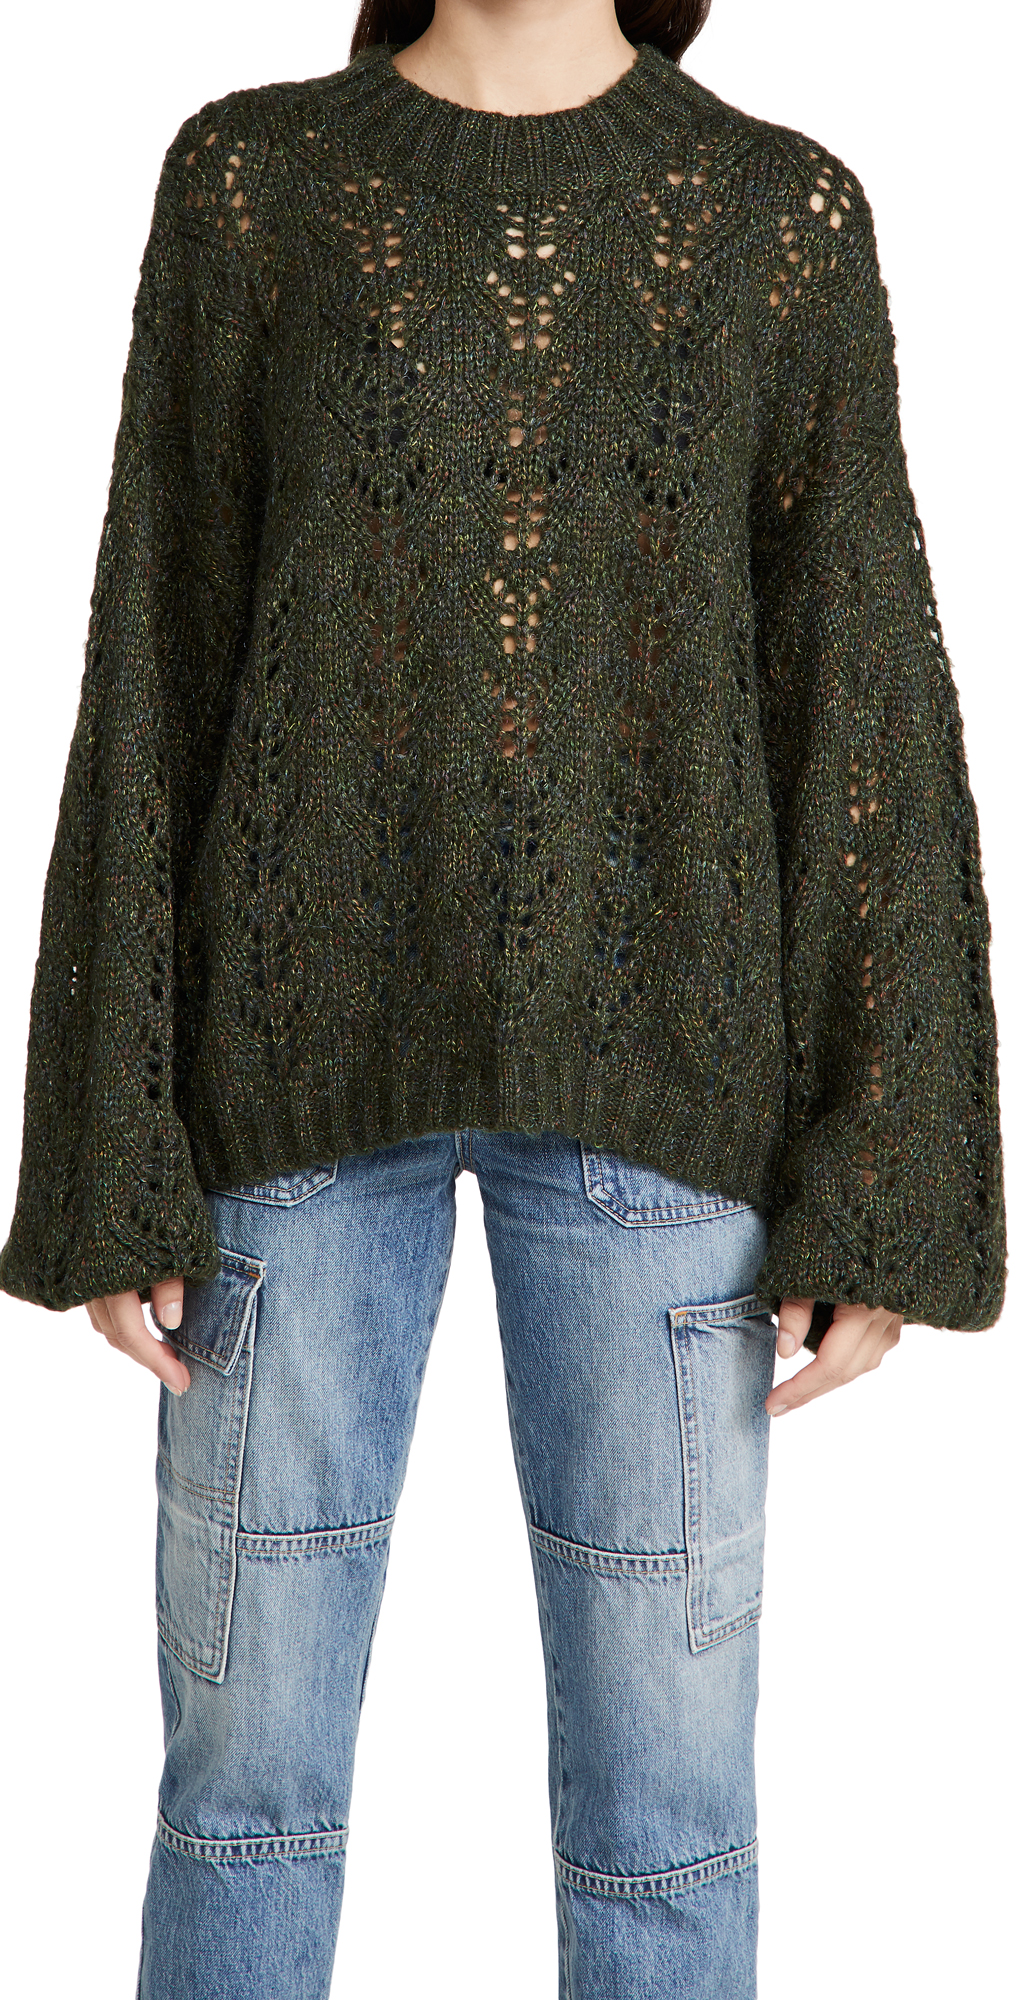 One Teaspoon Day Party Knit Sweater